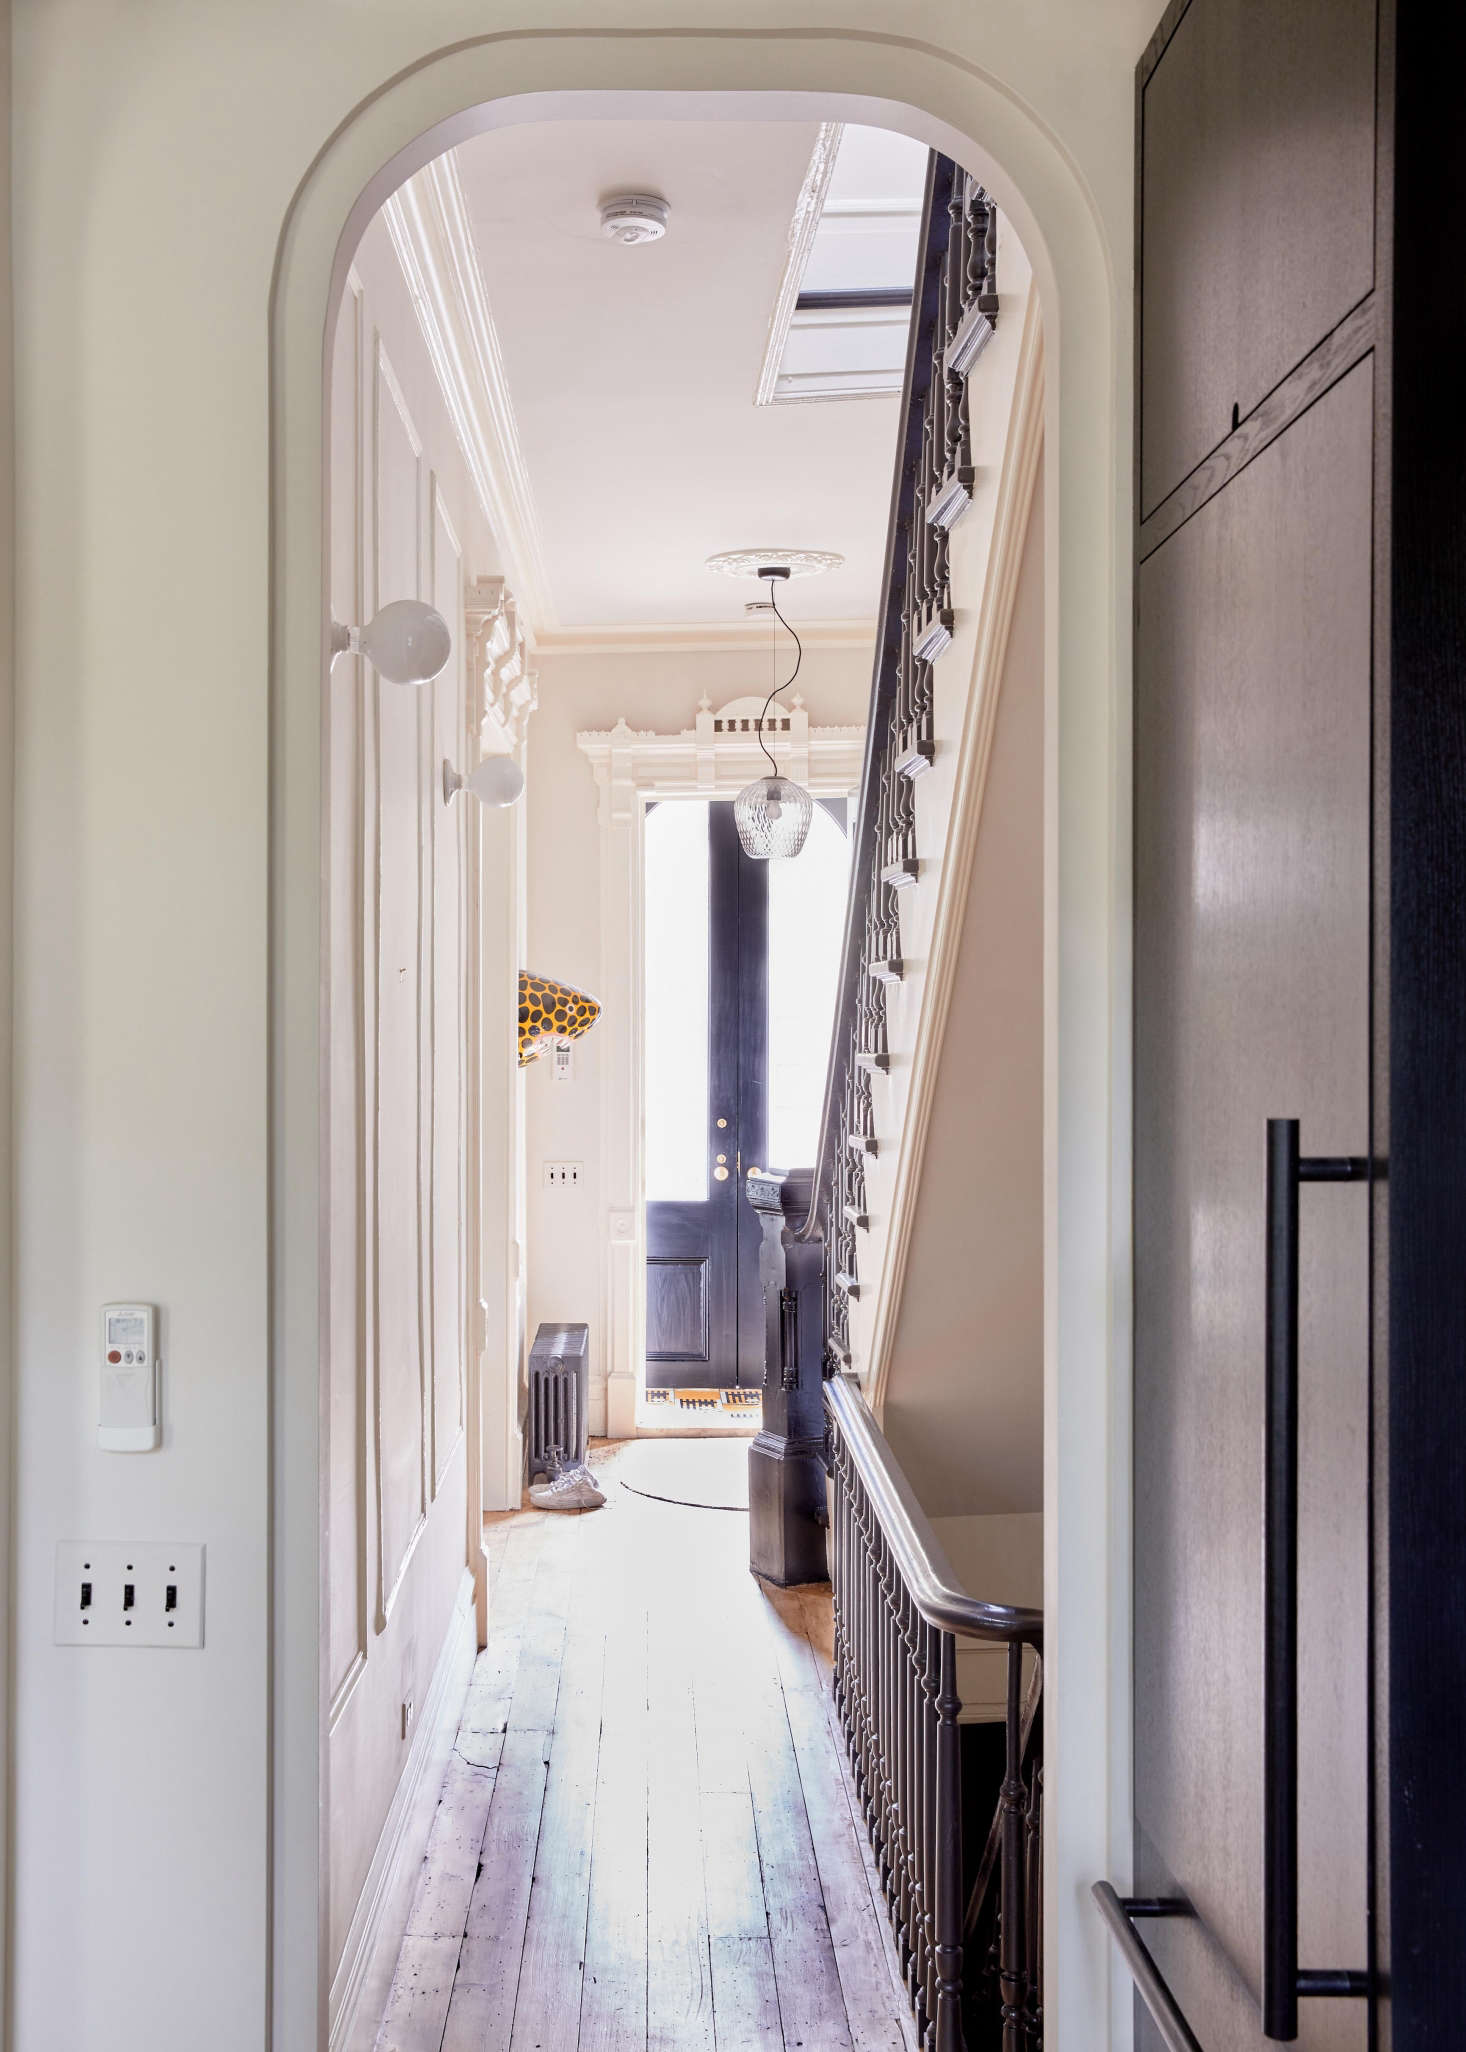 The Sentimental Minimalist: A Young Architect's Bed-Stuy Townhouse Makeover